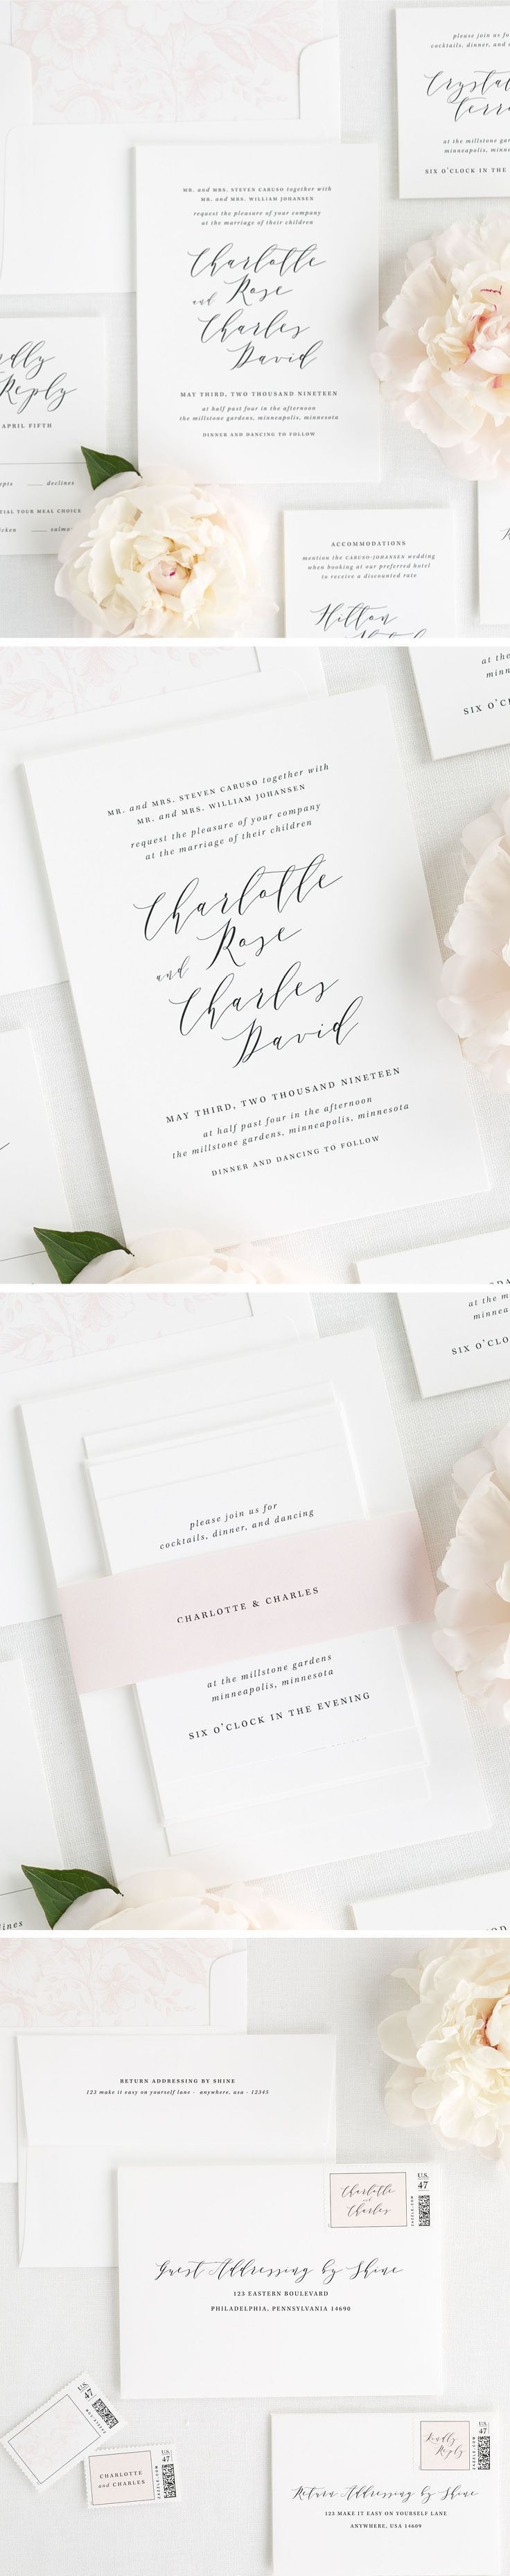 Charlotte Wedding Invitations | Modern calligraphy, Classic weddings ...